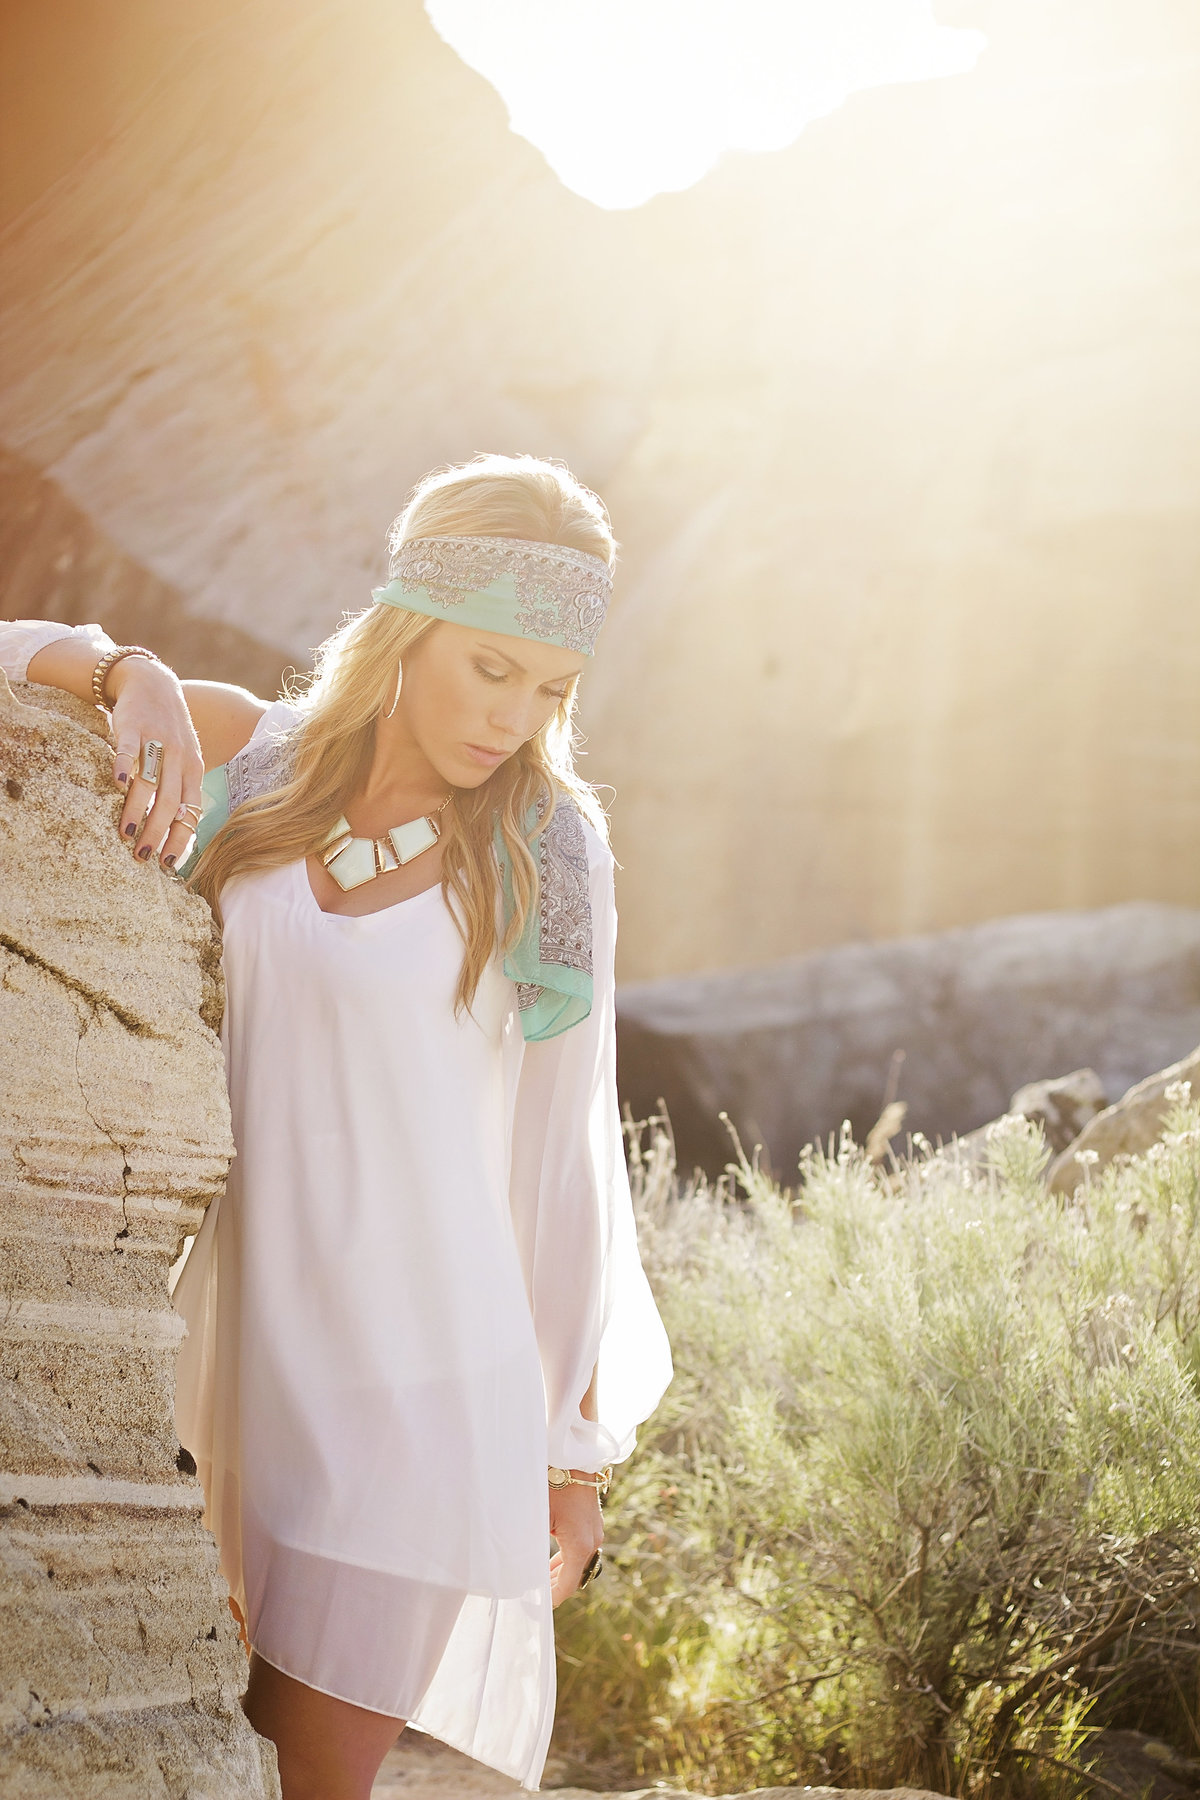 Sun flare portrait of a girl dressed in boho clothes in the Boise foothills